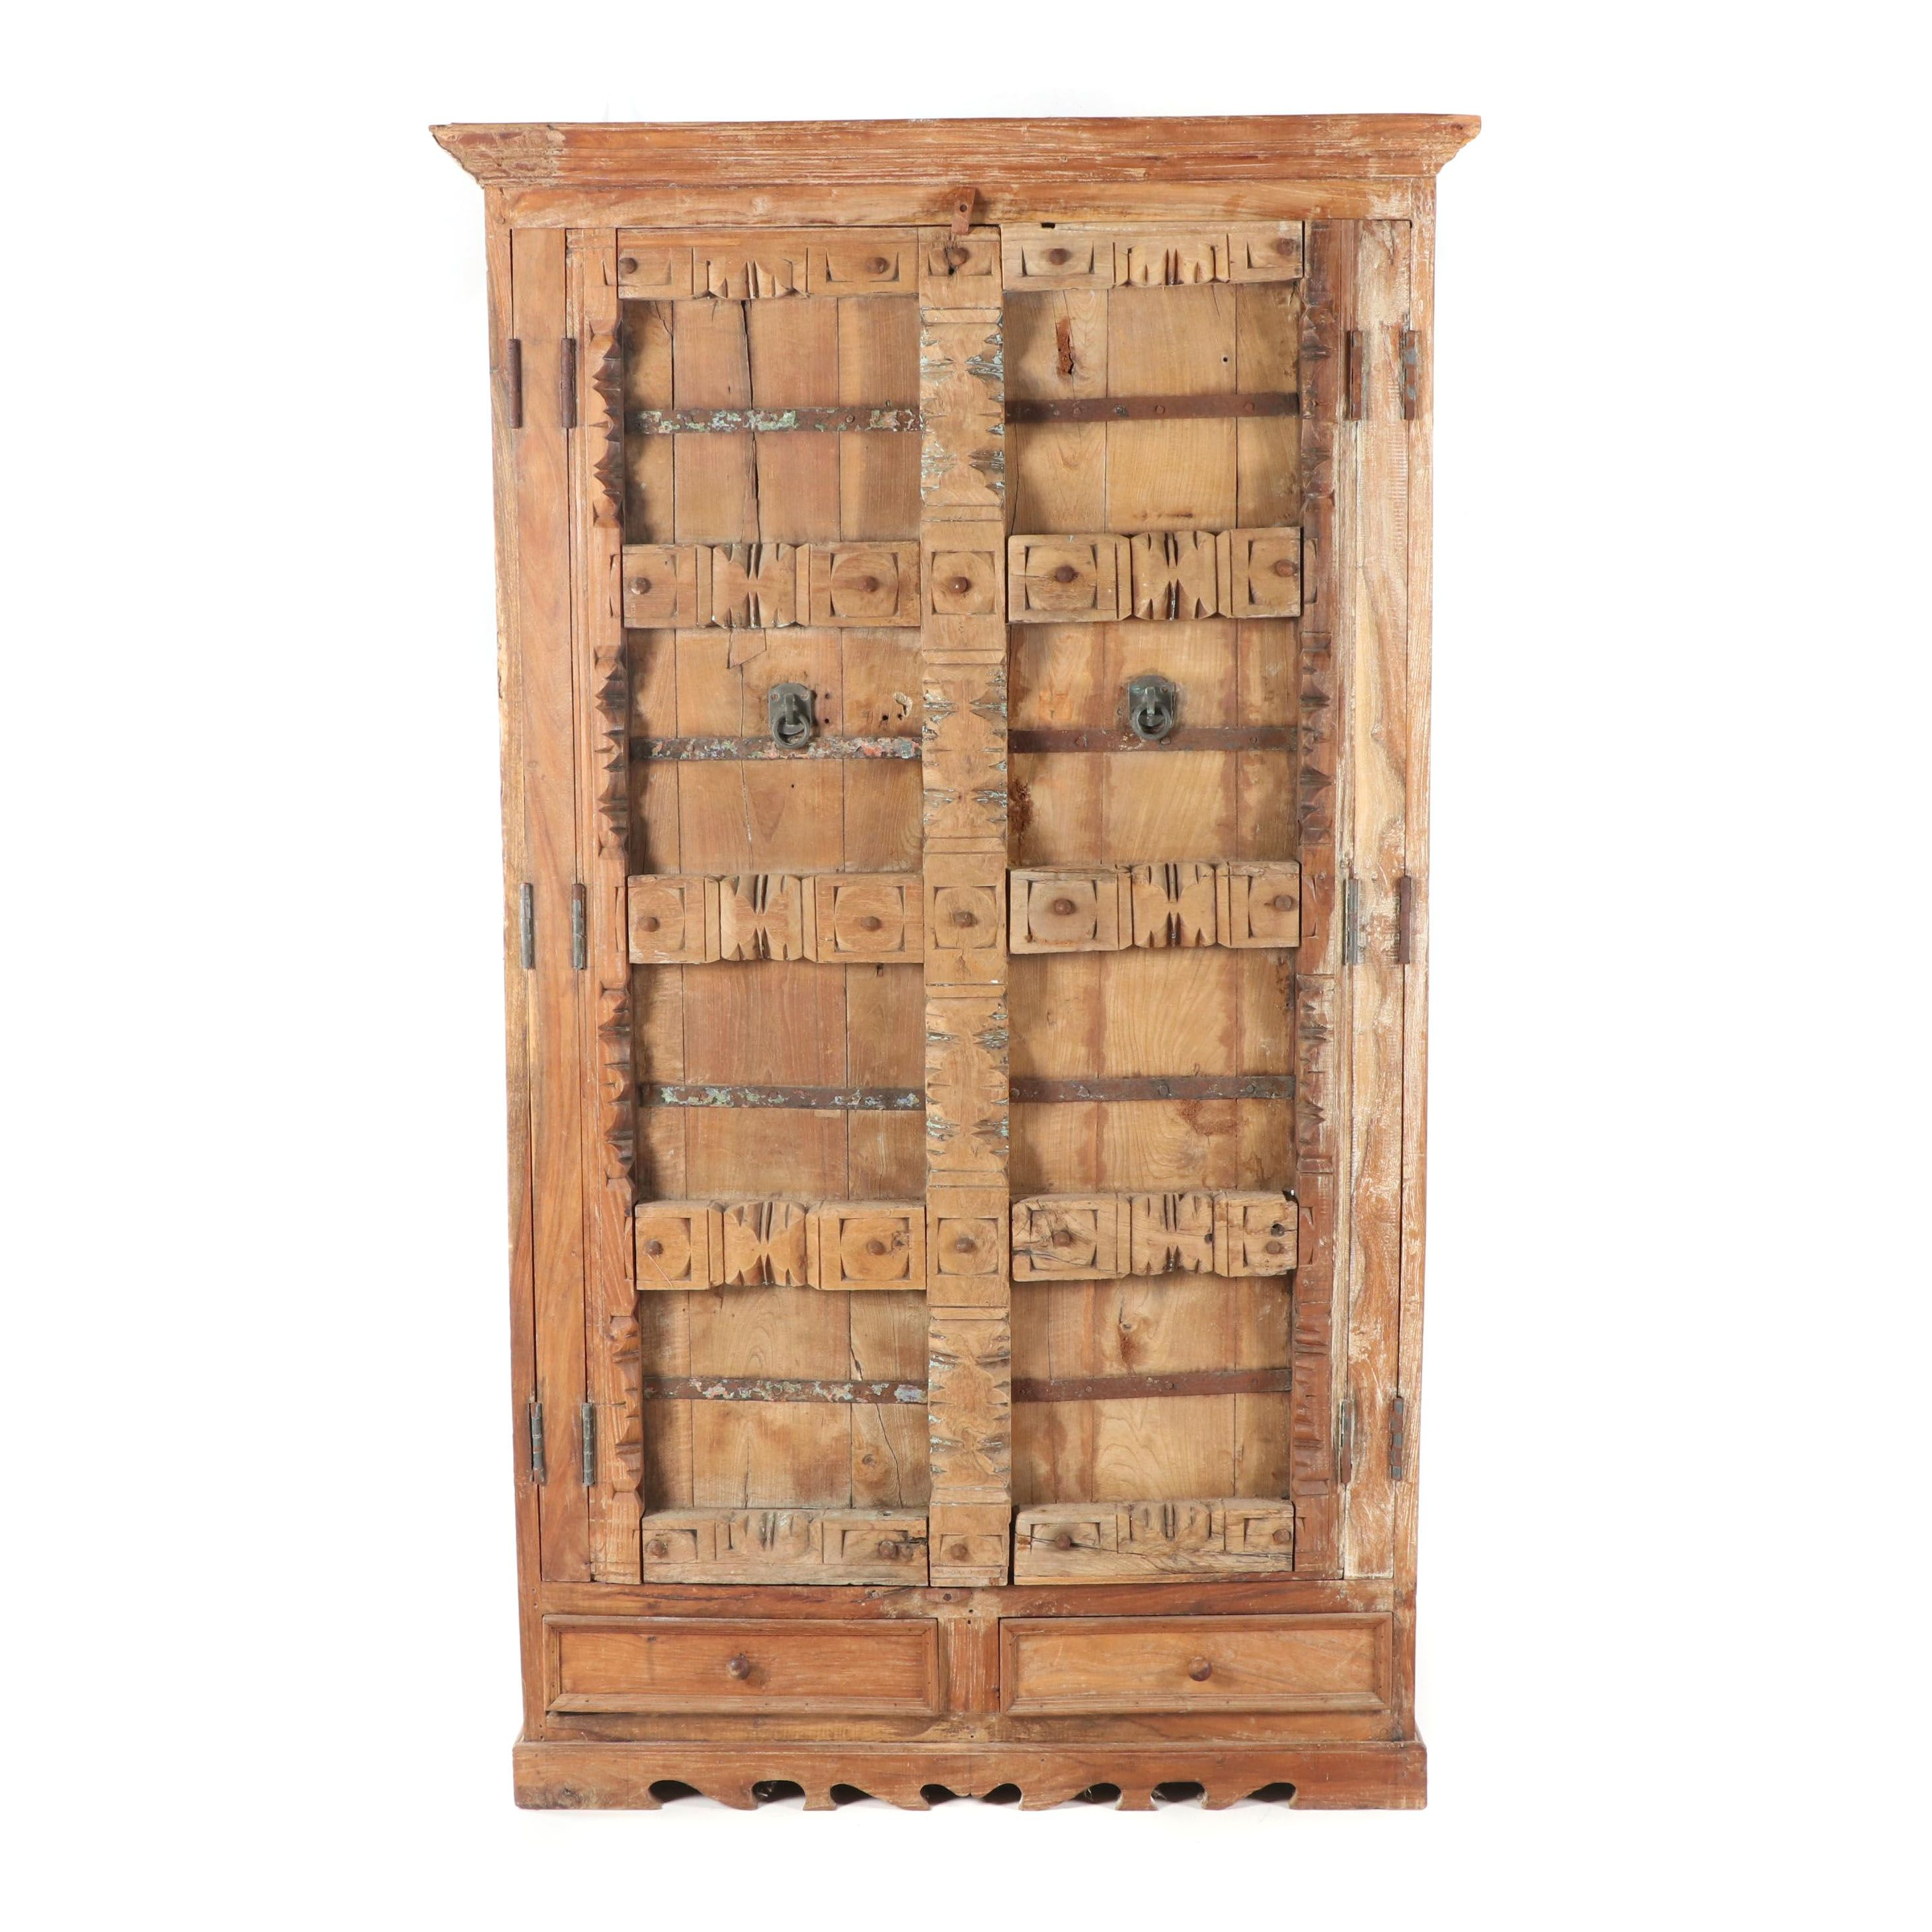 Mixed Woods Repurposed Door and Panel Cabinet, 20th Century